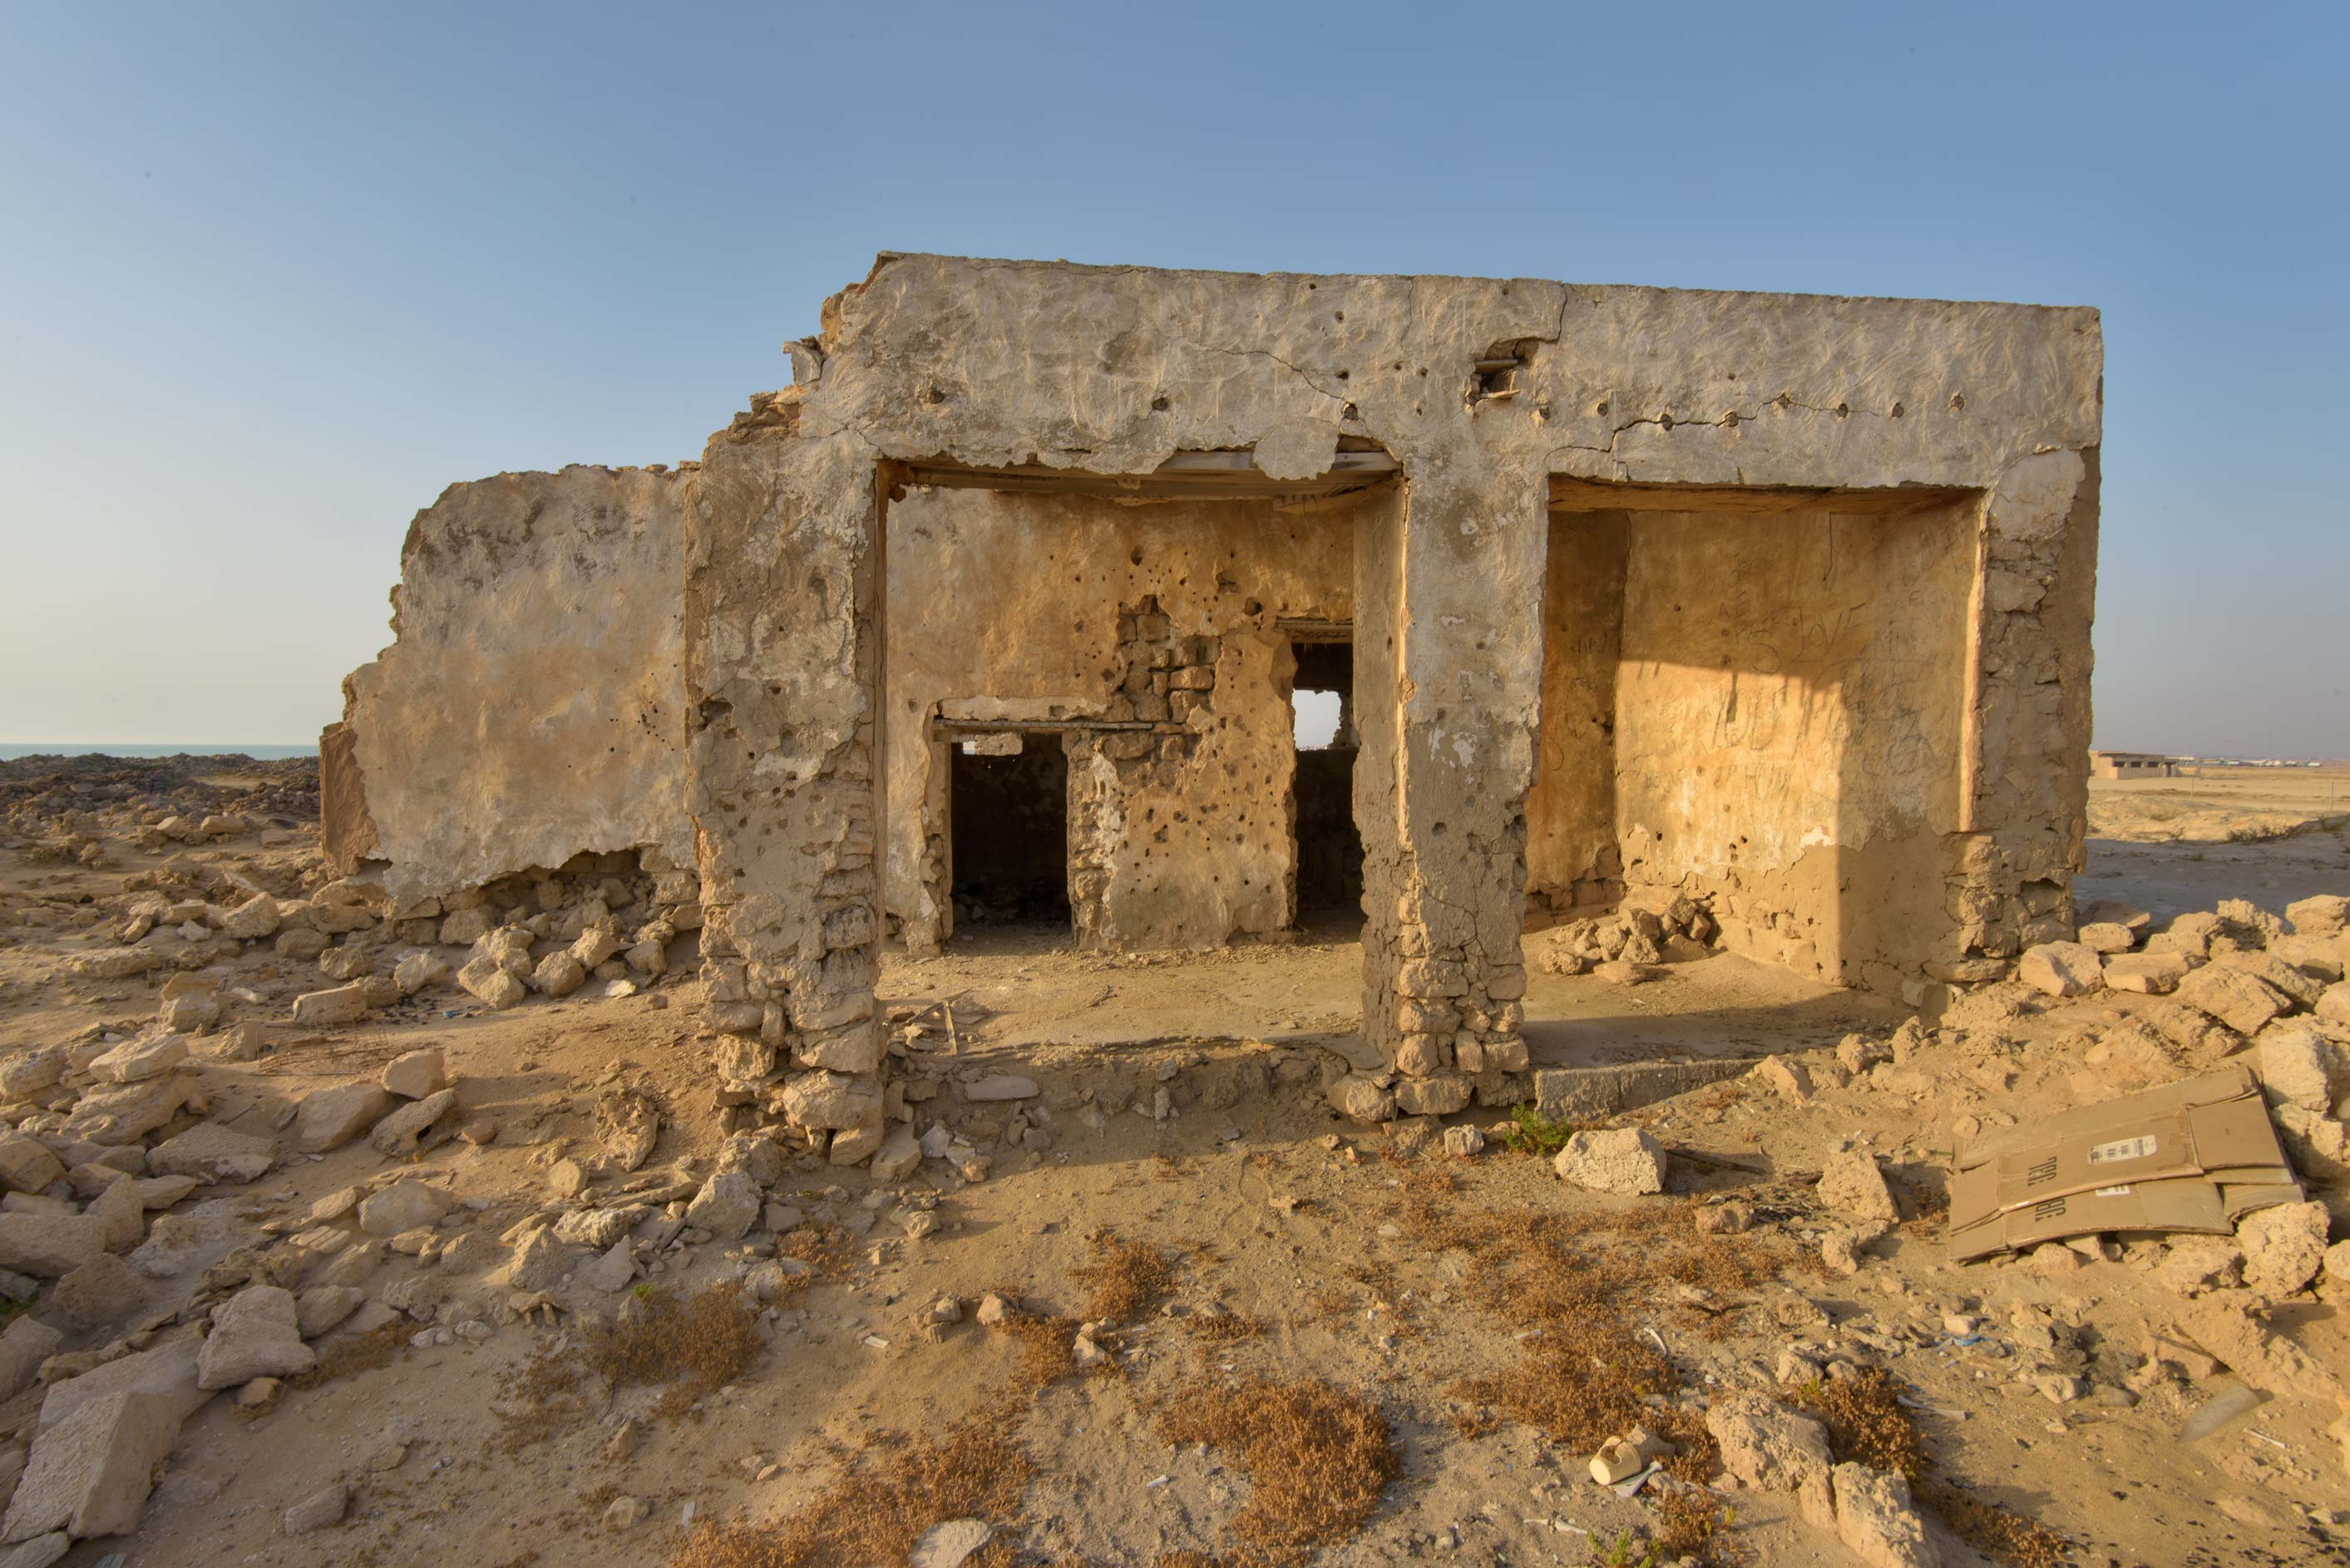 Arched building in old fishing village (ghost...eastern coast, Ash Shamal area. Qatar